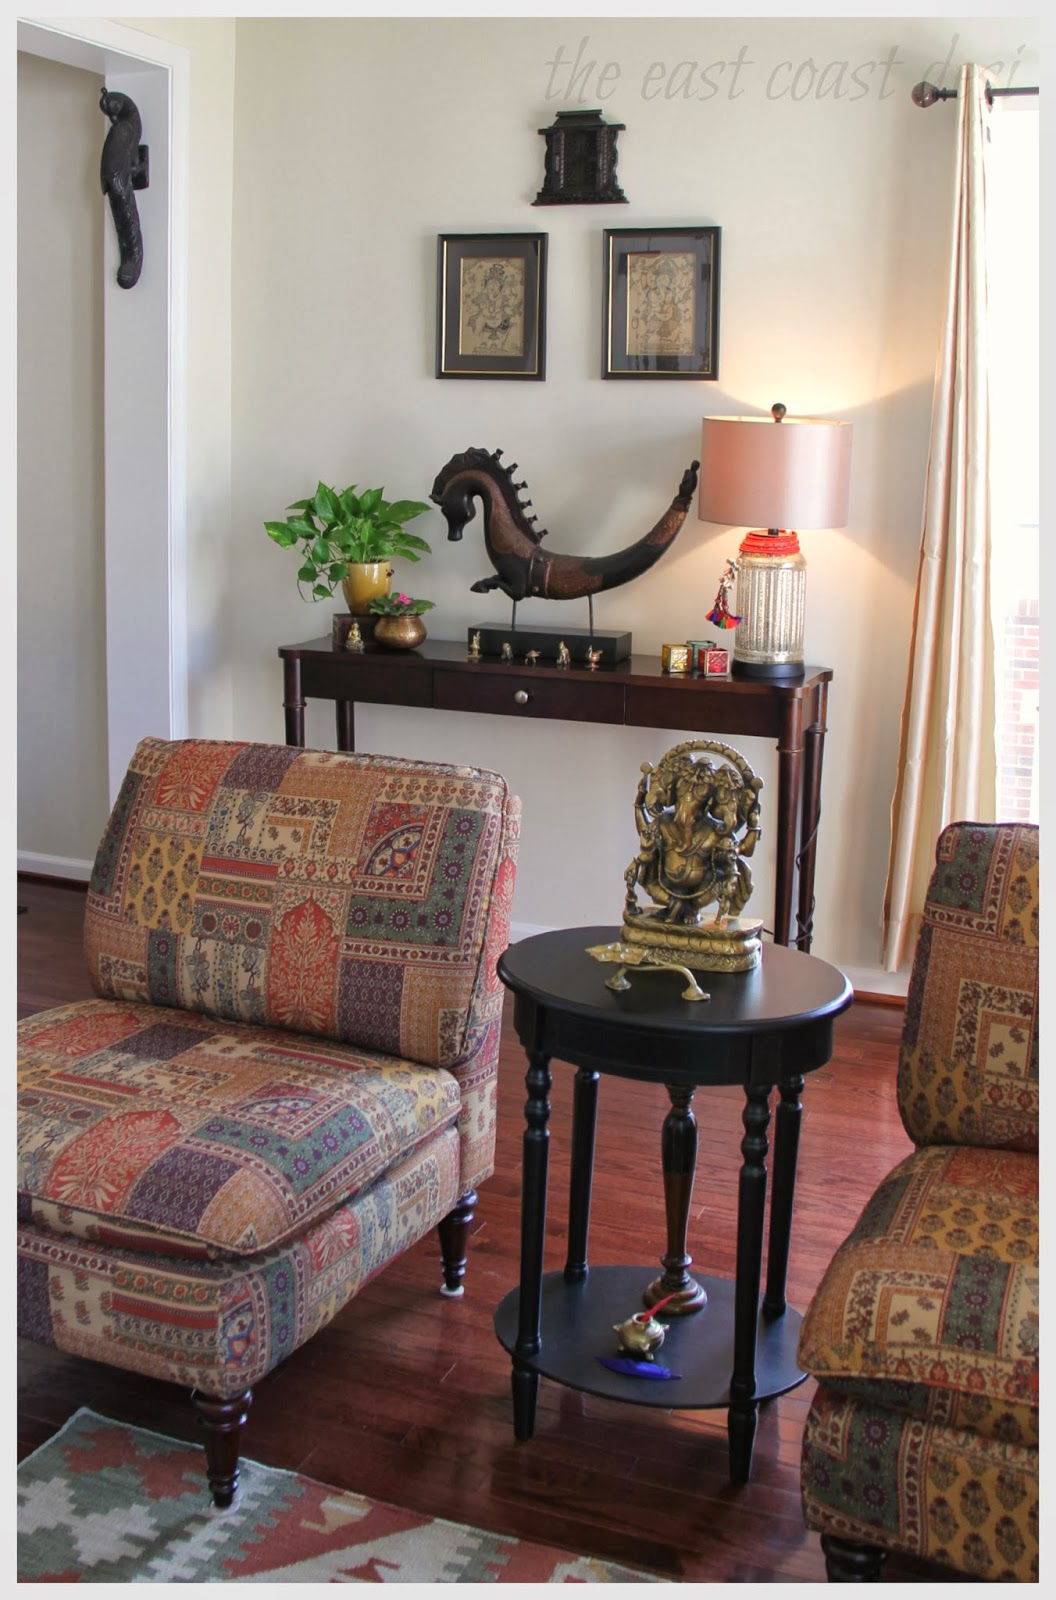 The east coast desi my living room a reflection of india for Living room ideas indian